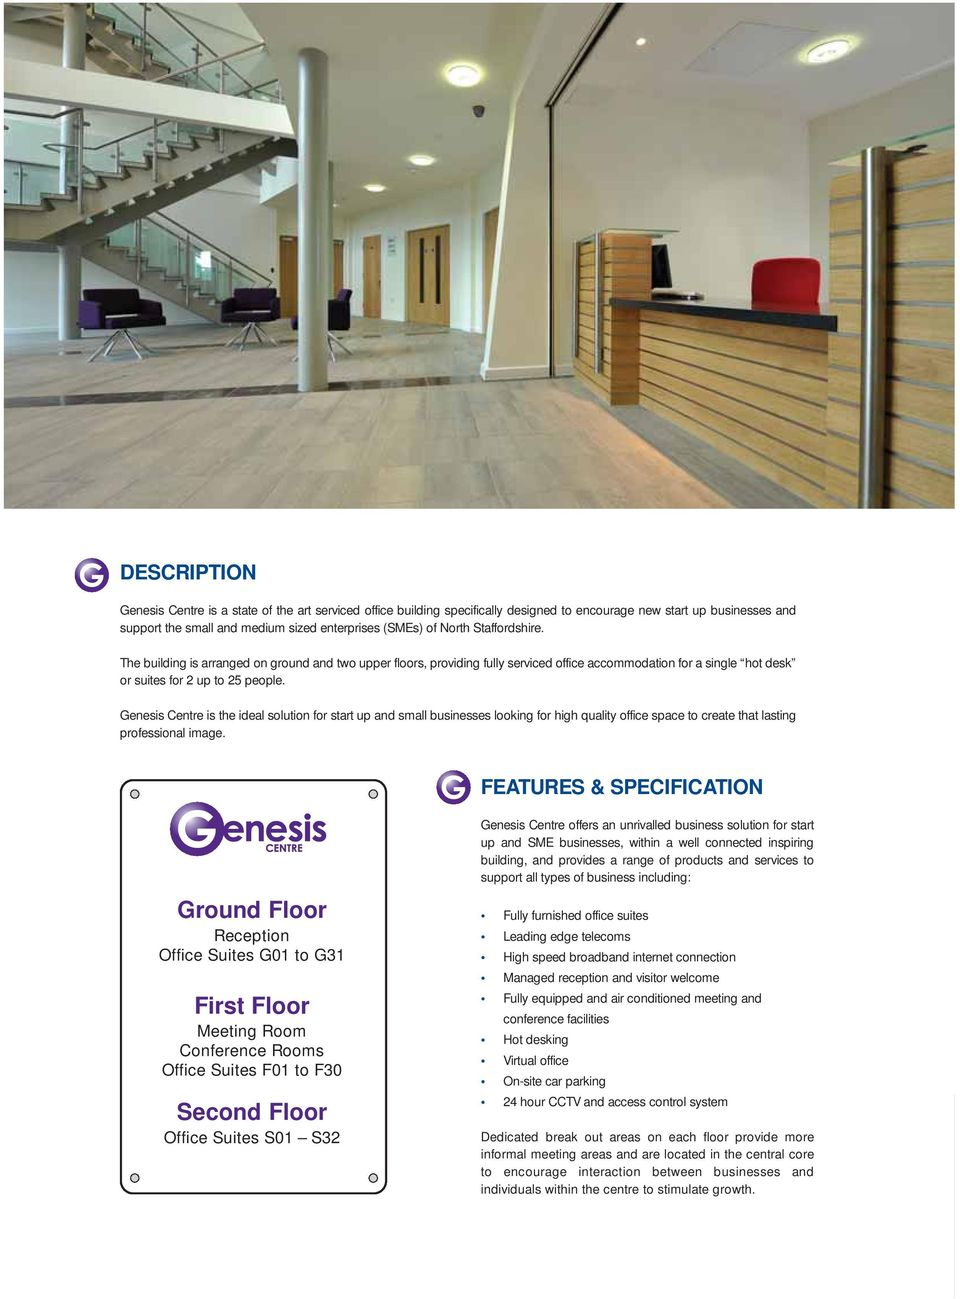 Genesis Centre is the ideal solution for start up and small businesses looking for high quality office space to create that lasting professional image.